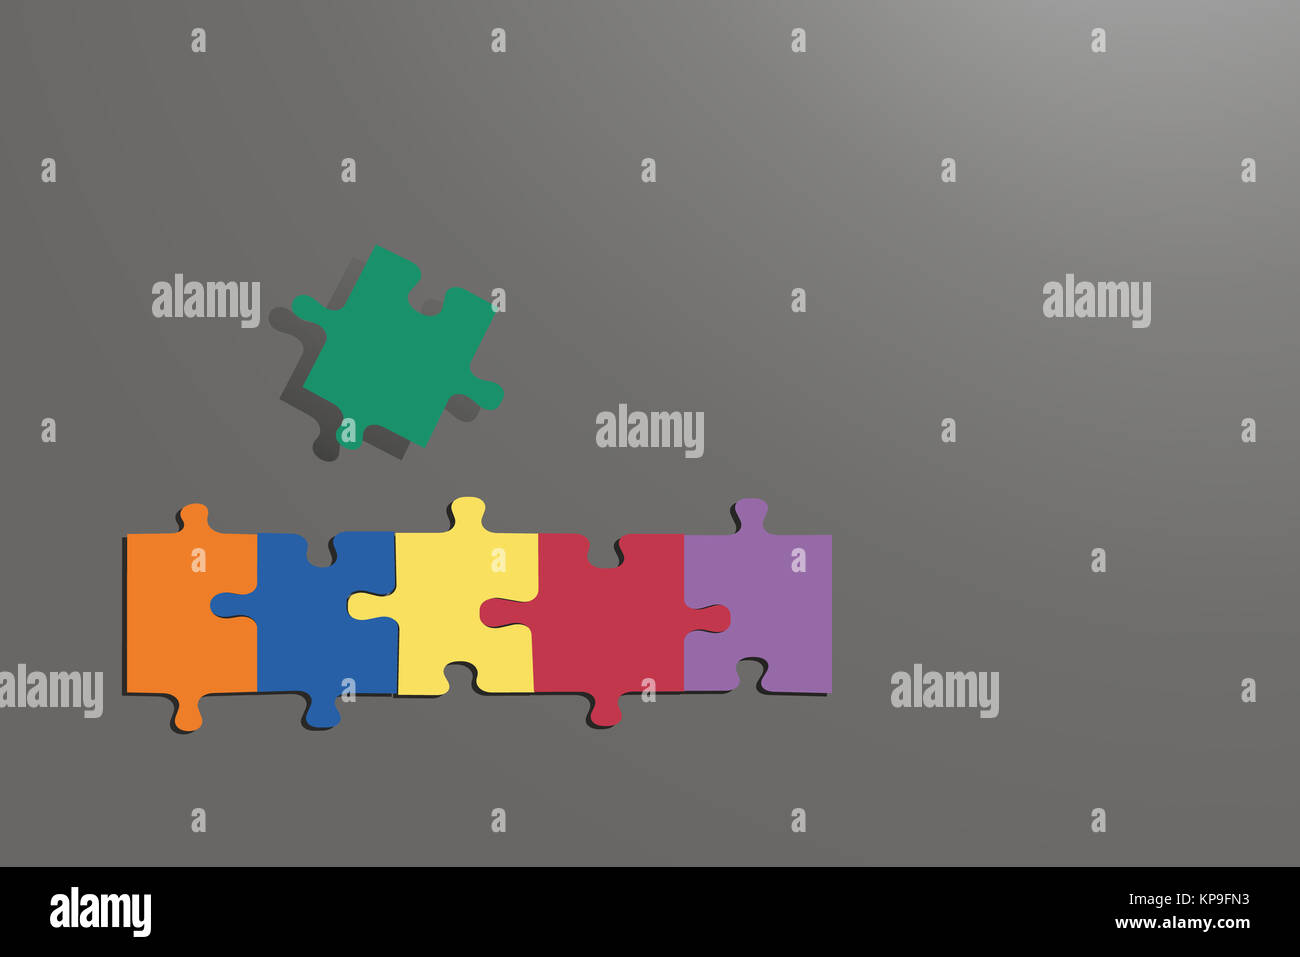 Jigsaw Puzzle Infographic Template Stock Photos & Jigsaw Puzzle ...